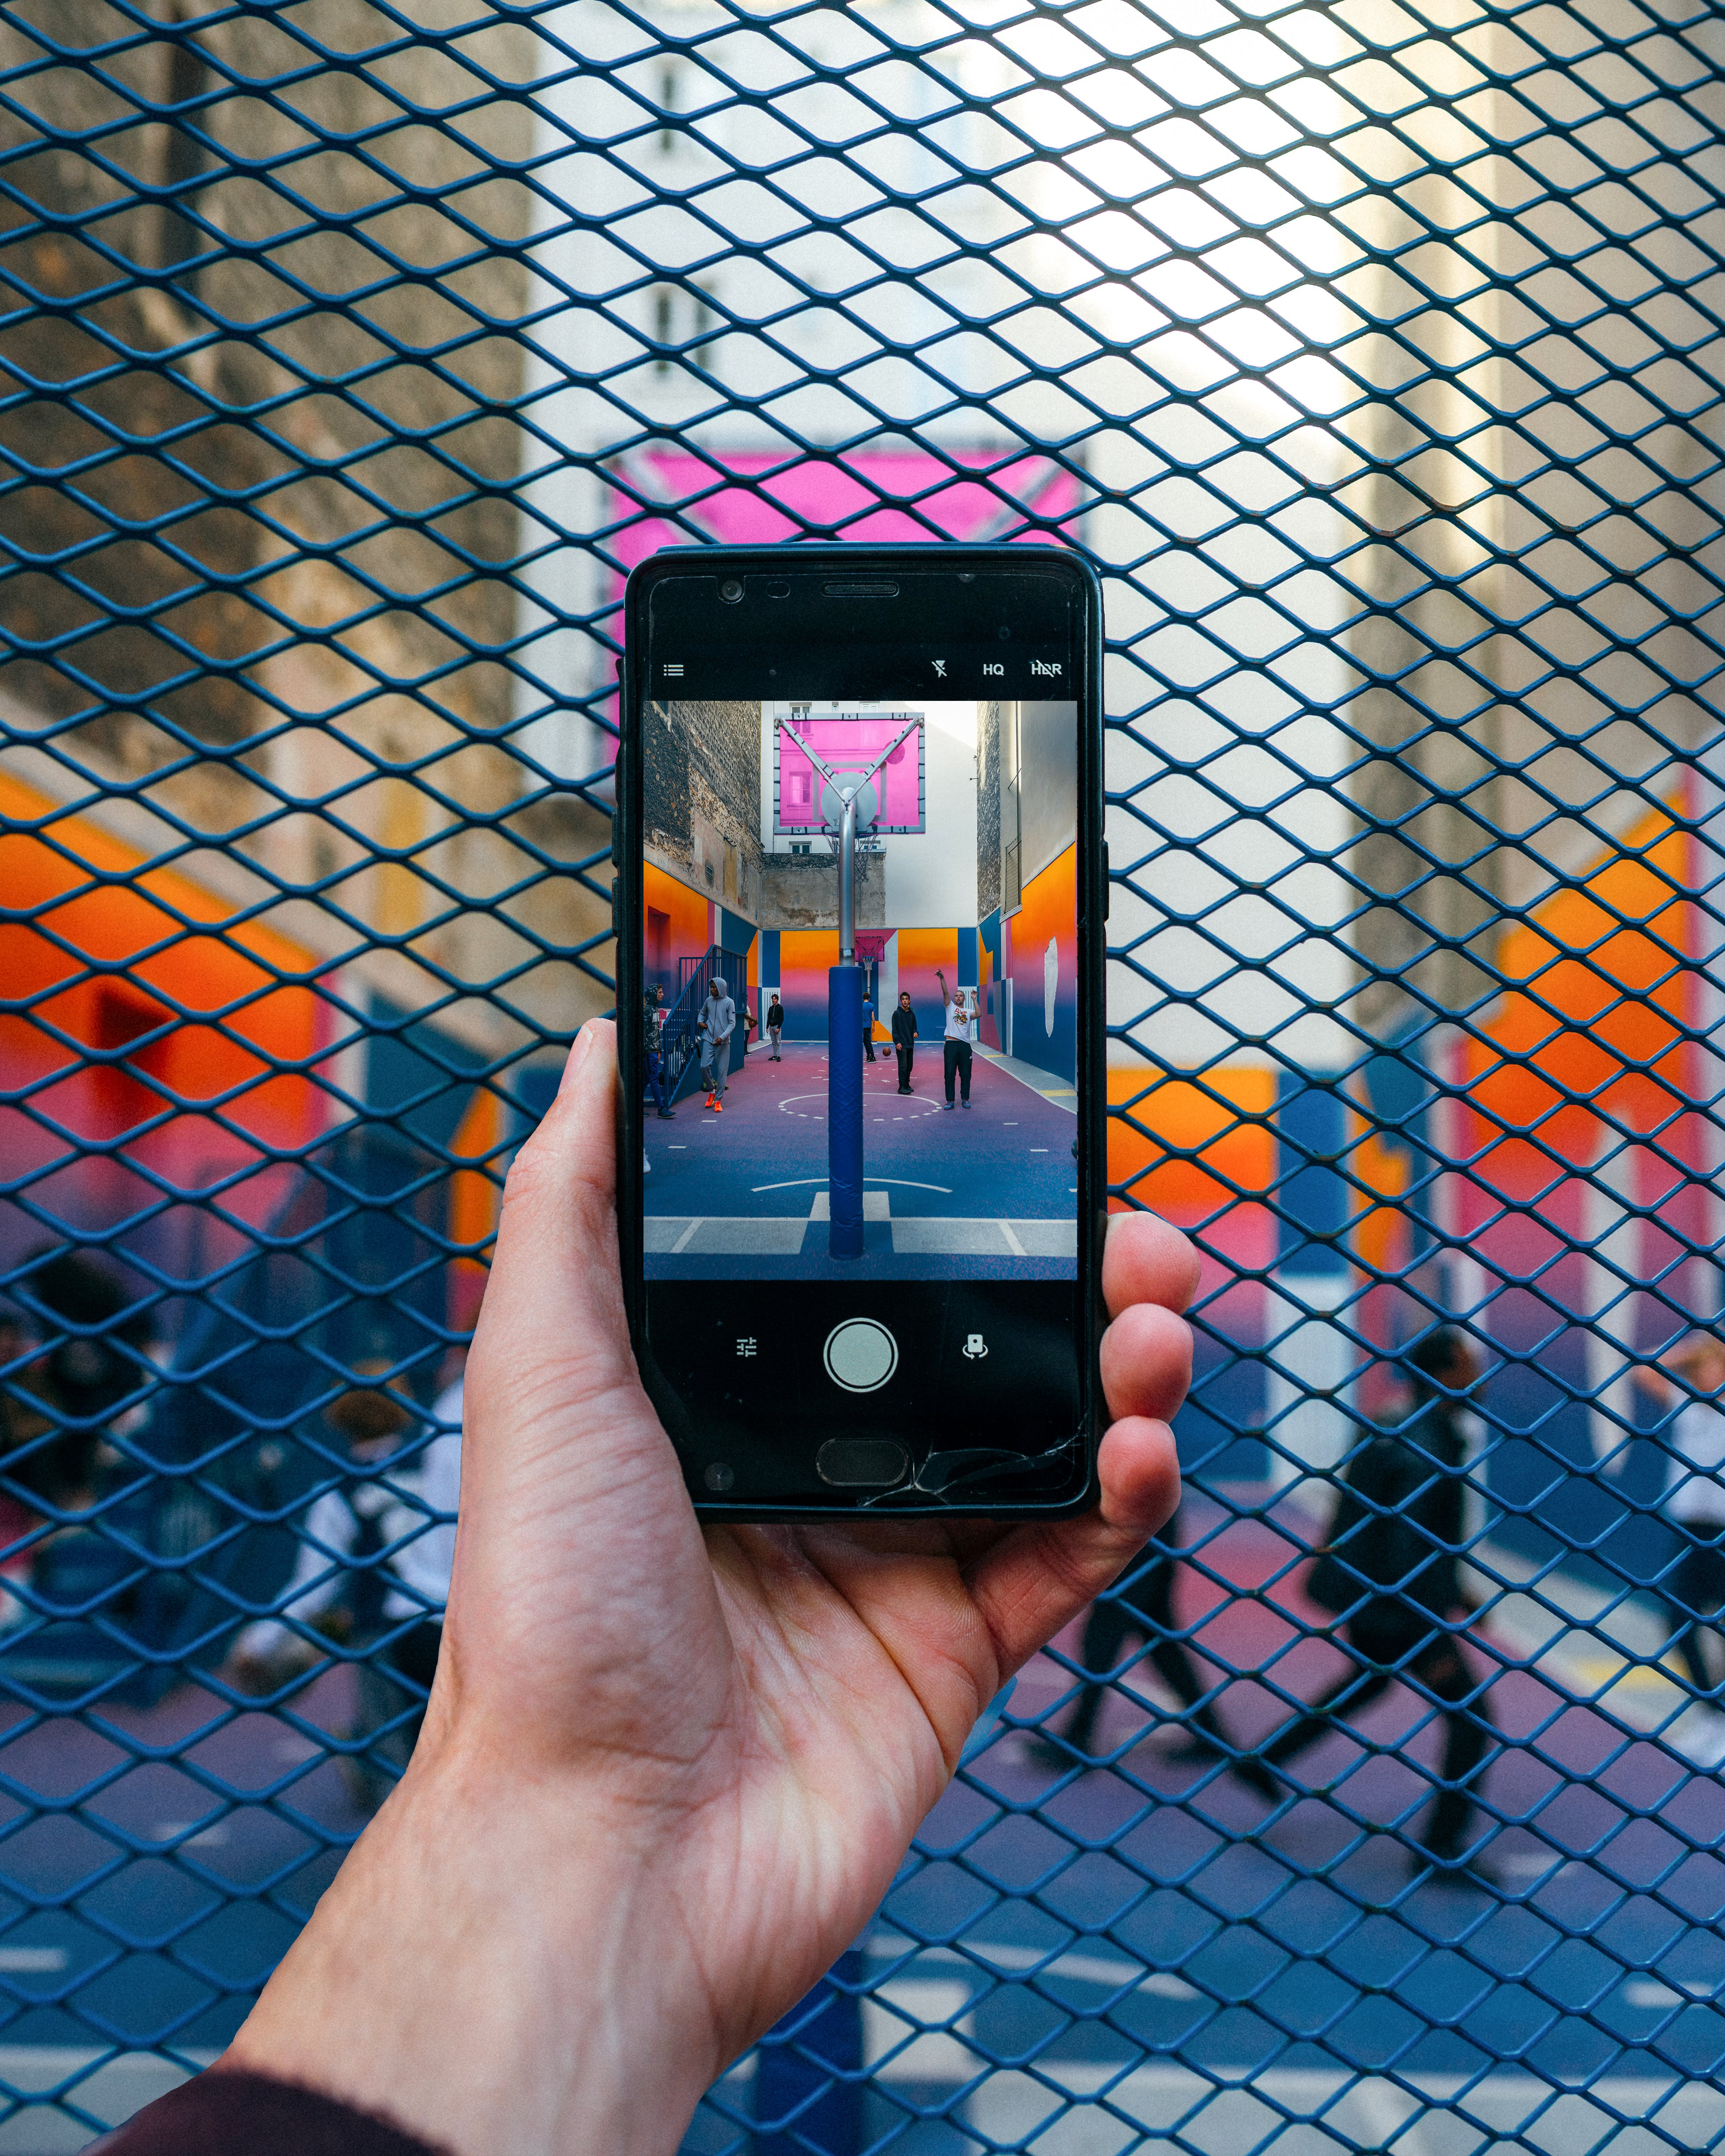 Person Taking Photo Of People In Basketball Court